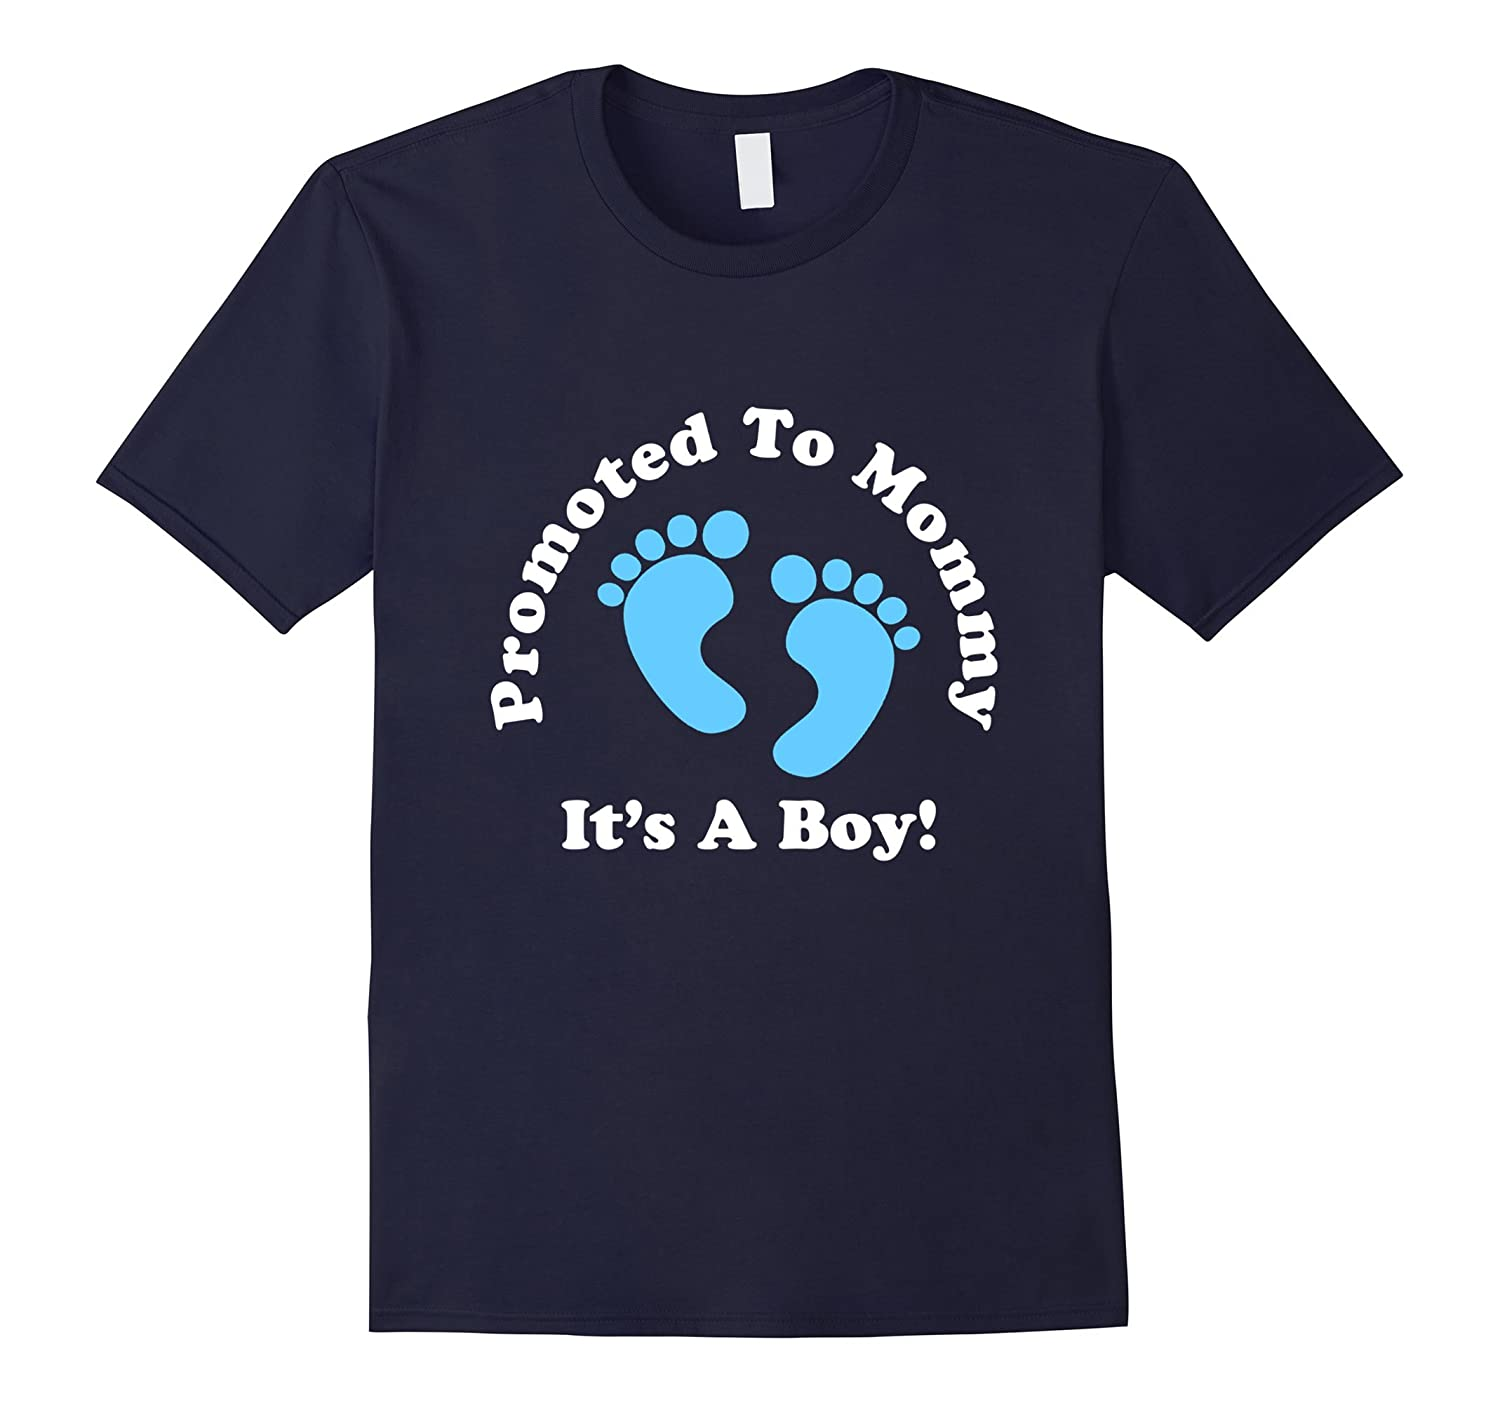 Promoted To Mommy Its A Boy Tshirt Expectant Mother Expect-Vaci